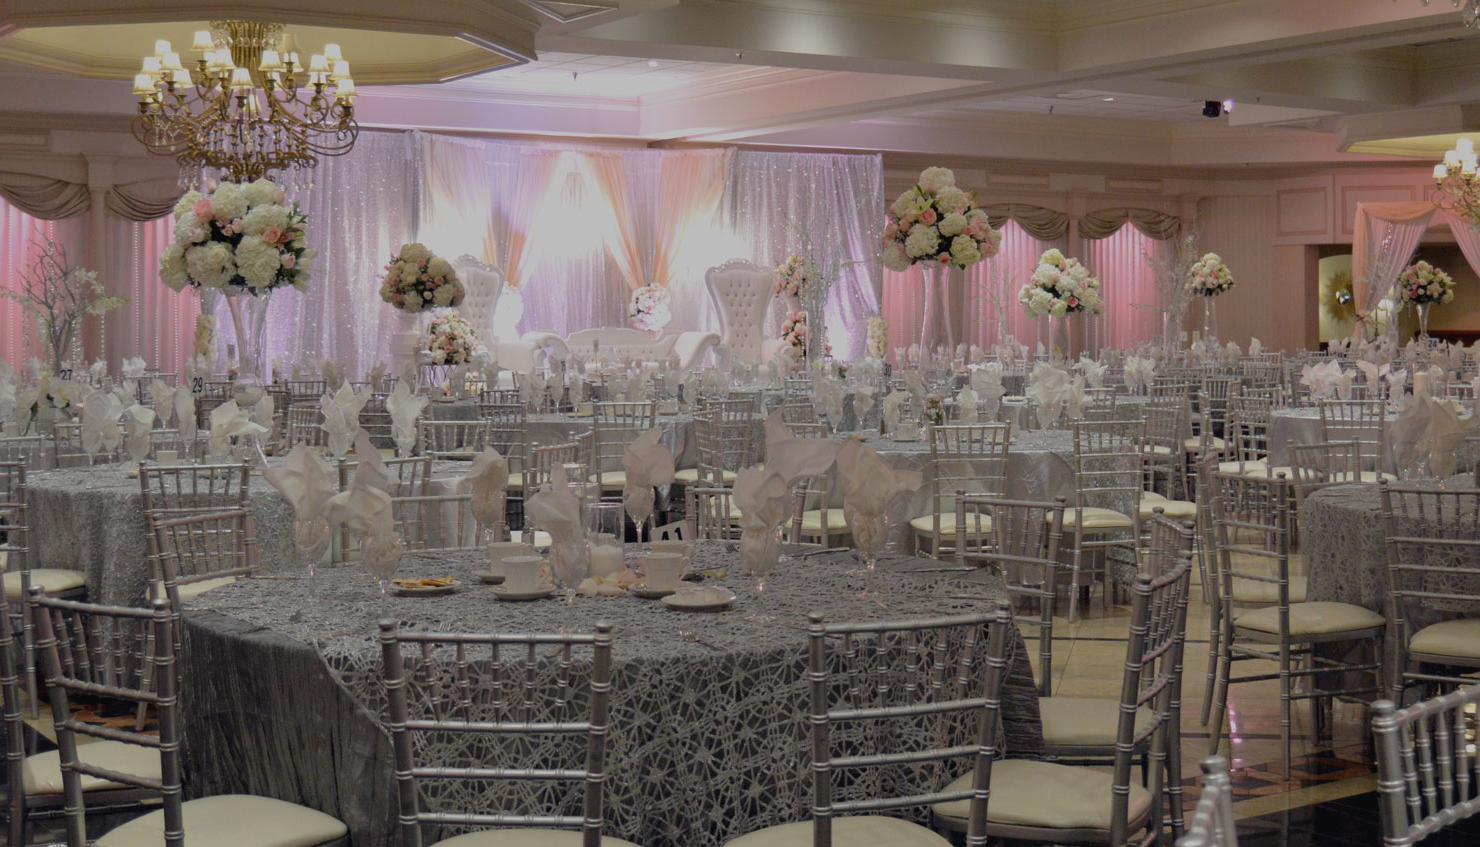 wedding banquet hall decorated in pink